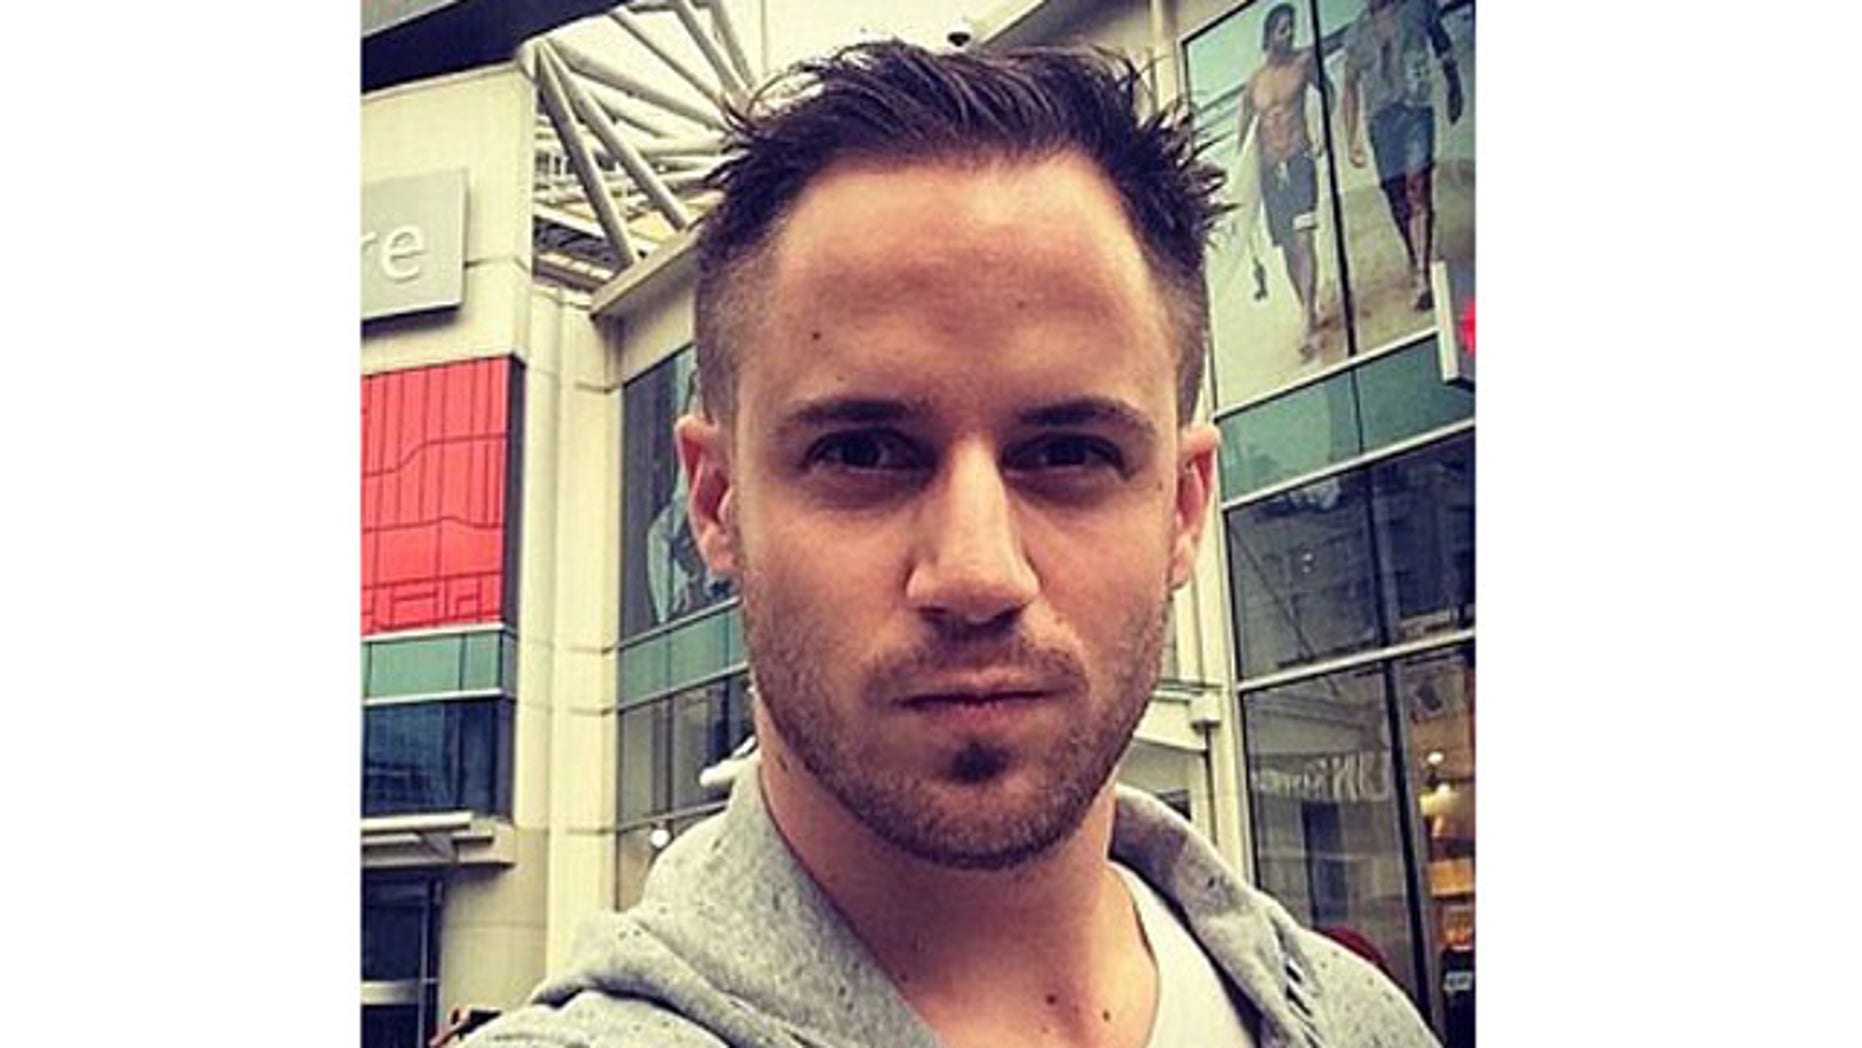 Julien Blanc is pictured here in an undated photo.